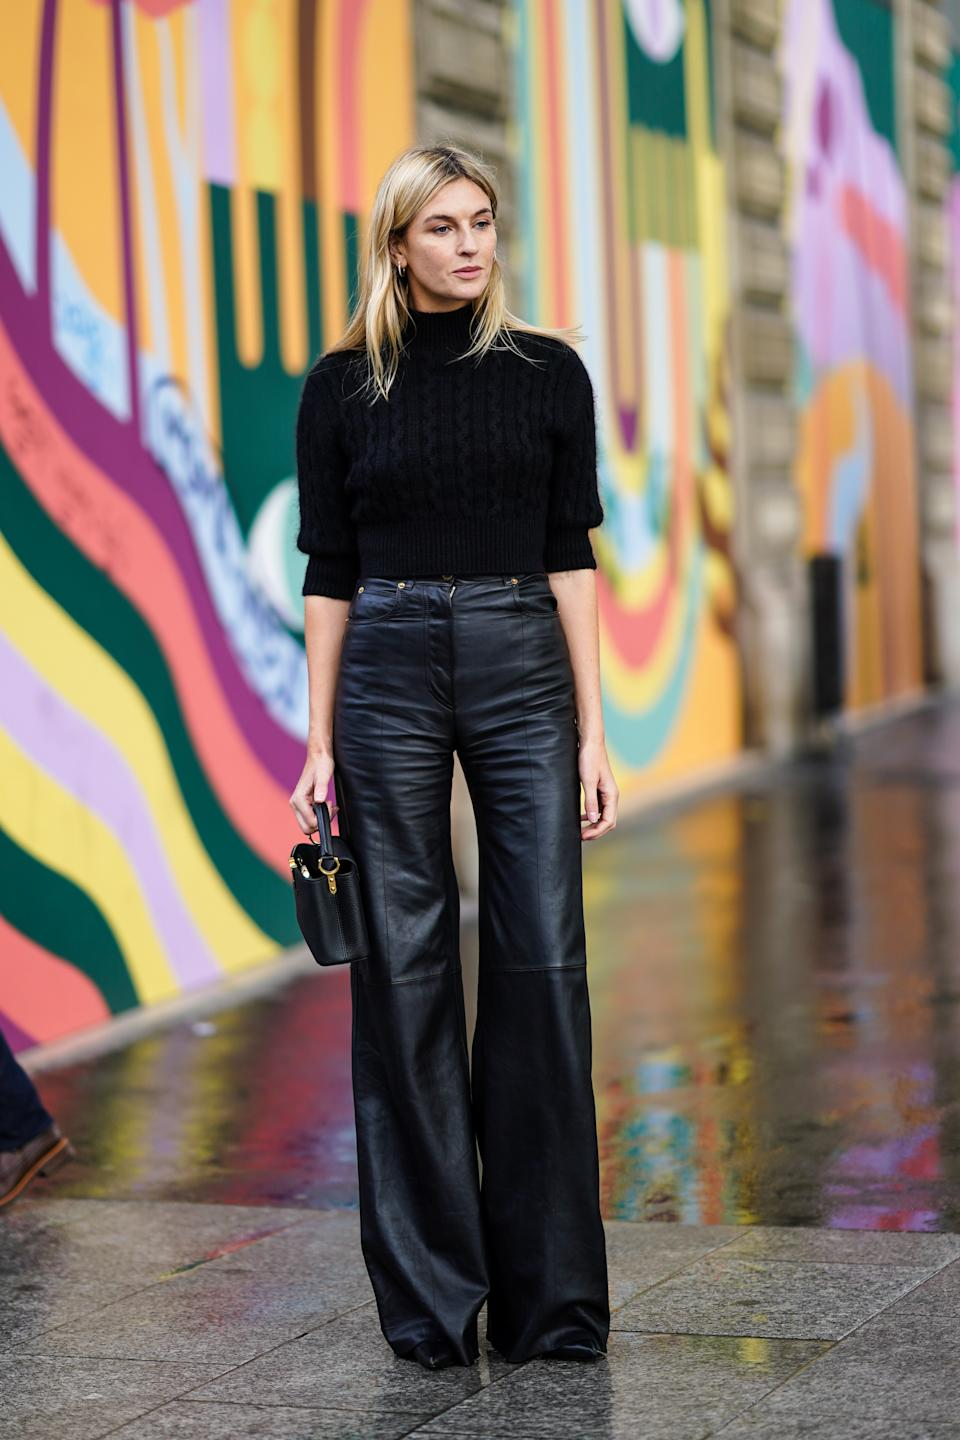 PARIS, FRANCE - OCTOBER 06: Camille Charriere wears a black turtleneck pullover, black leather flared pants, a Vuitton bag, outside Louis Vuitton, during Paris Fashion Week - Womenswear Spring Summer 2021, on October 06, 2020 in Paris, France. (Photo by Edward Berthelot/Getty Images)